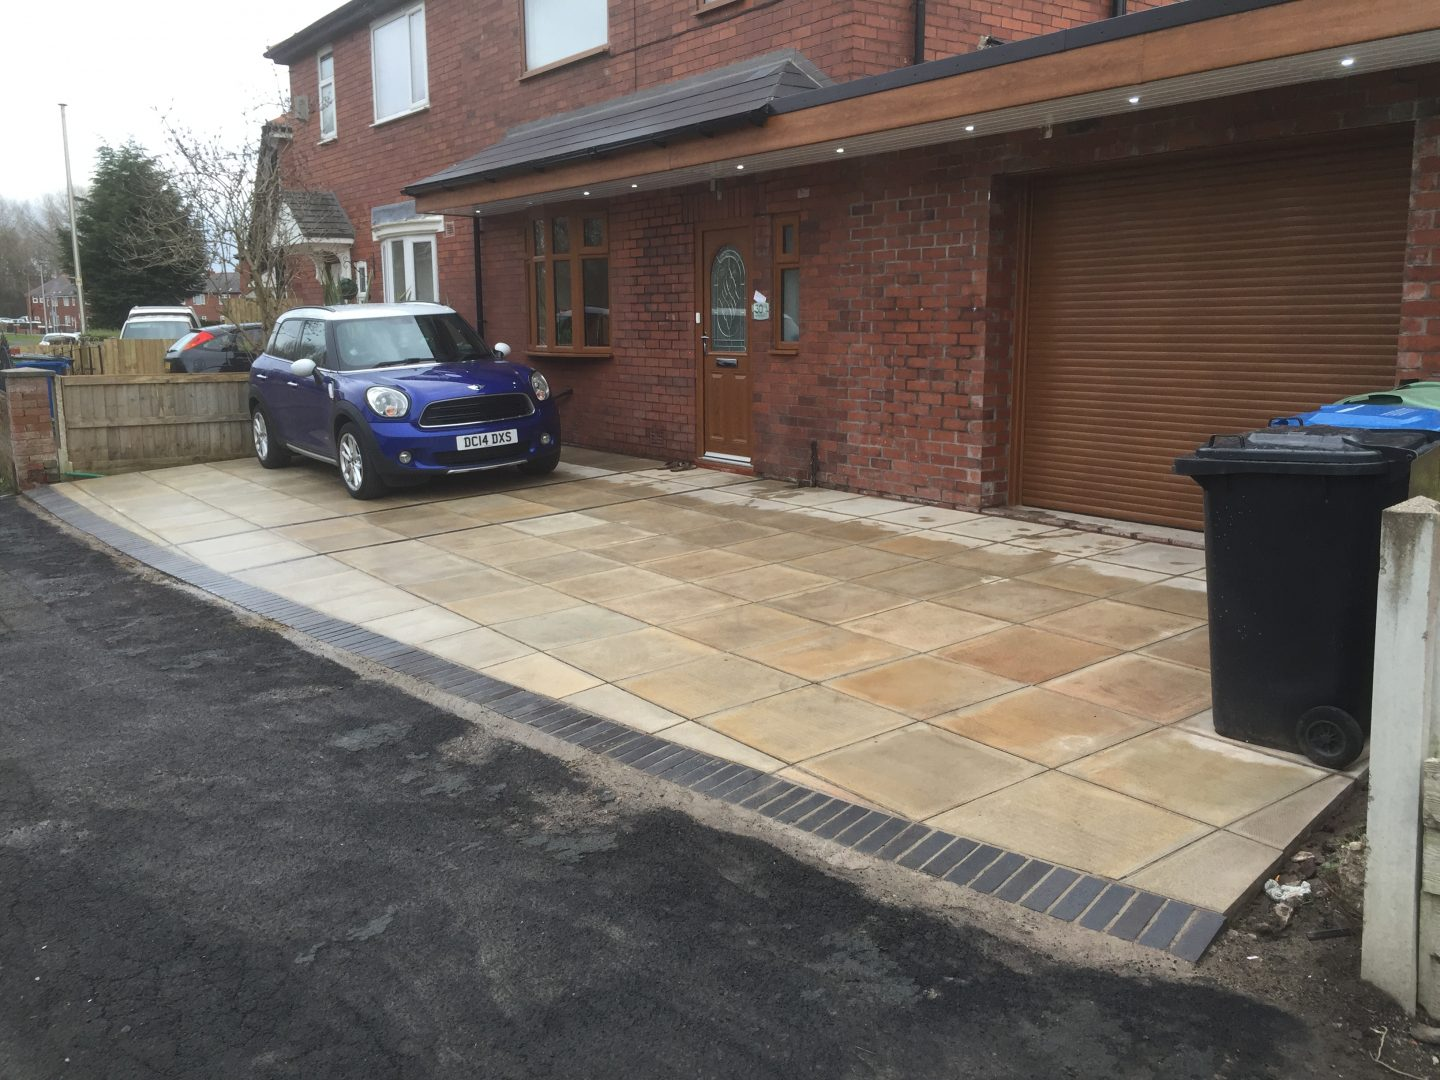 Driveway & Canopy with lights